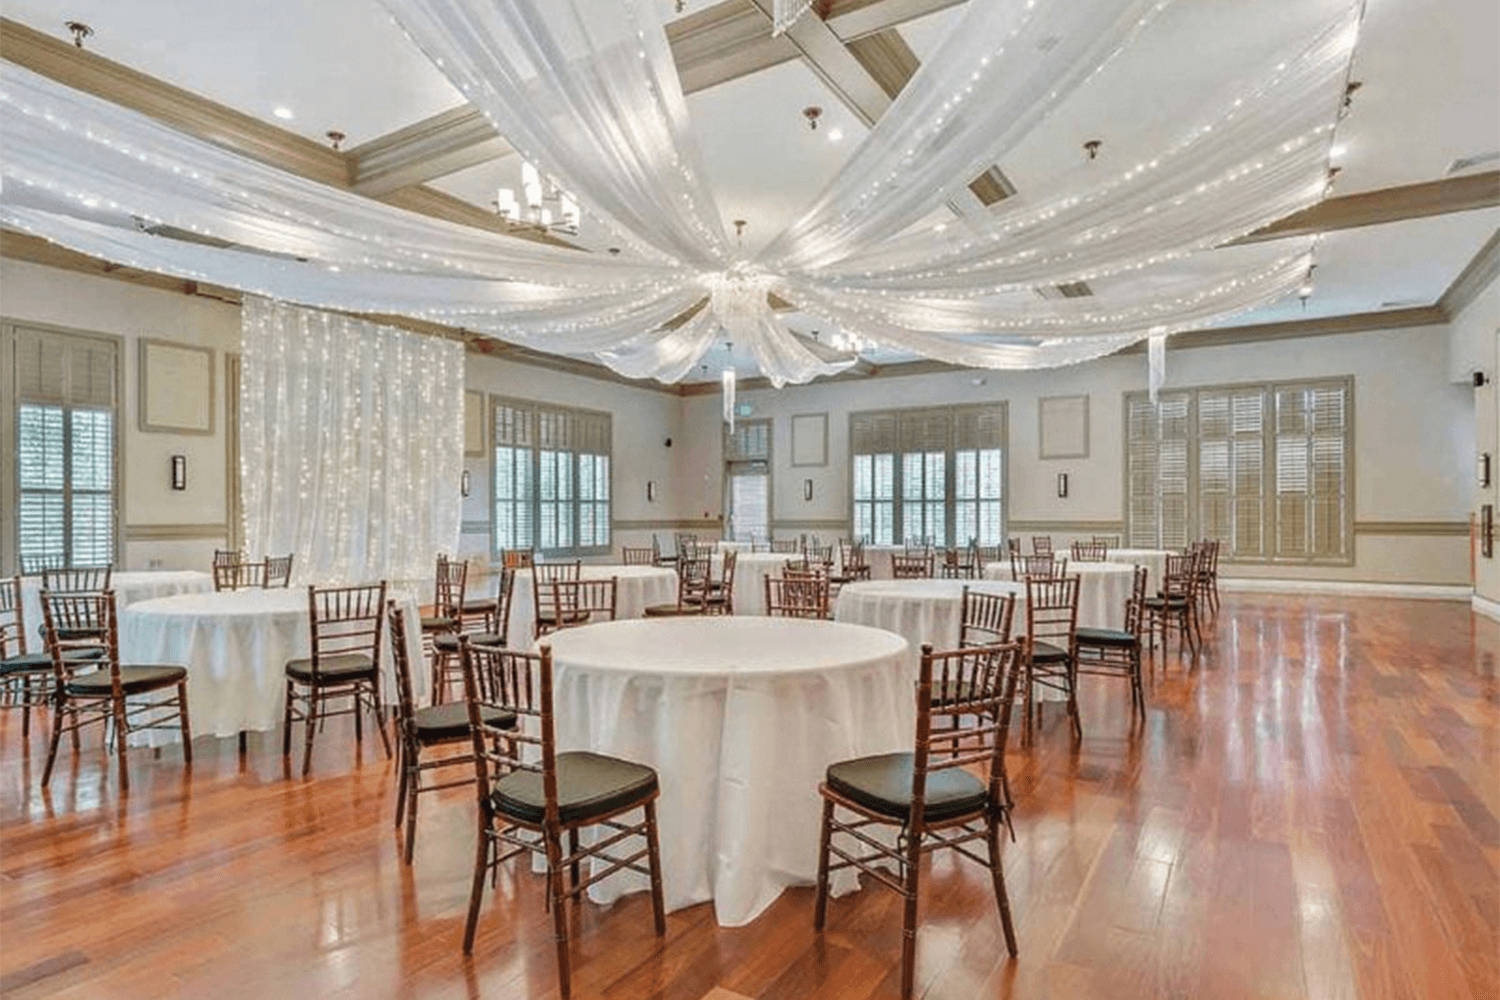 Event room with shiny wood floors, white drapery with string-lights, and tables with white table cloths